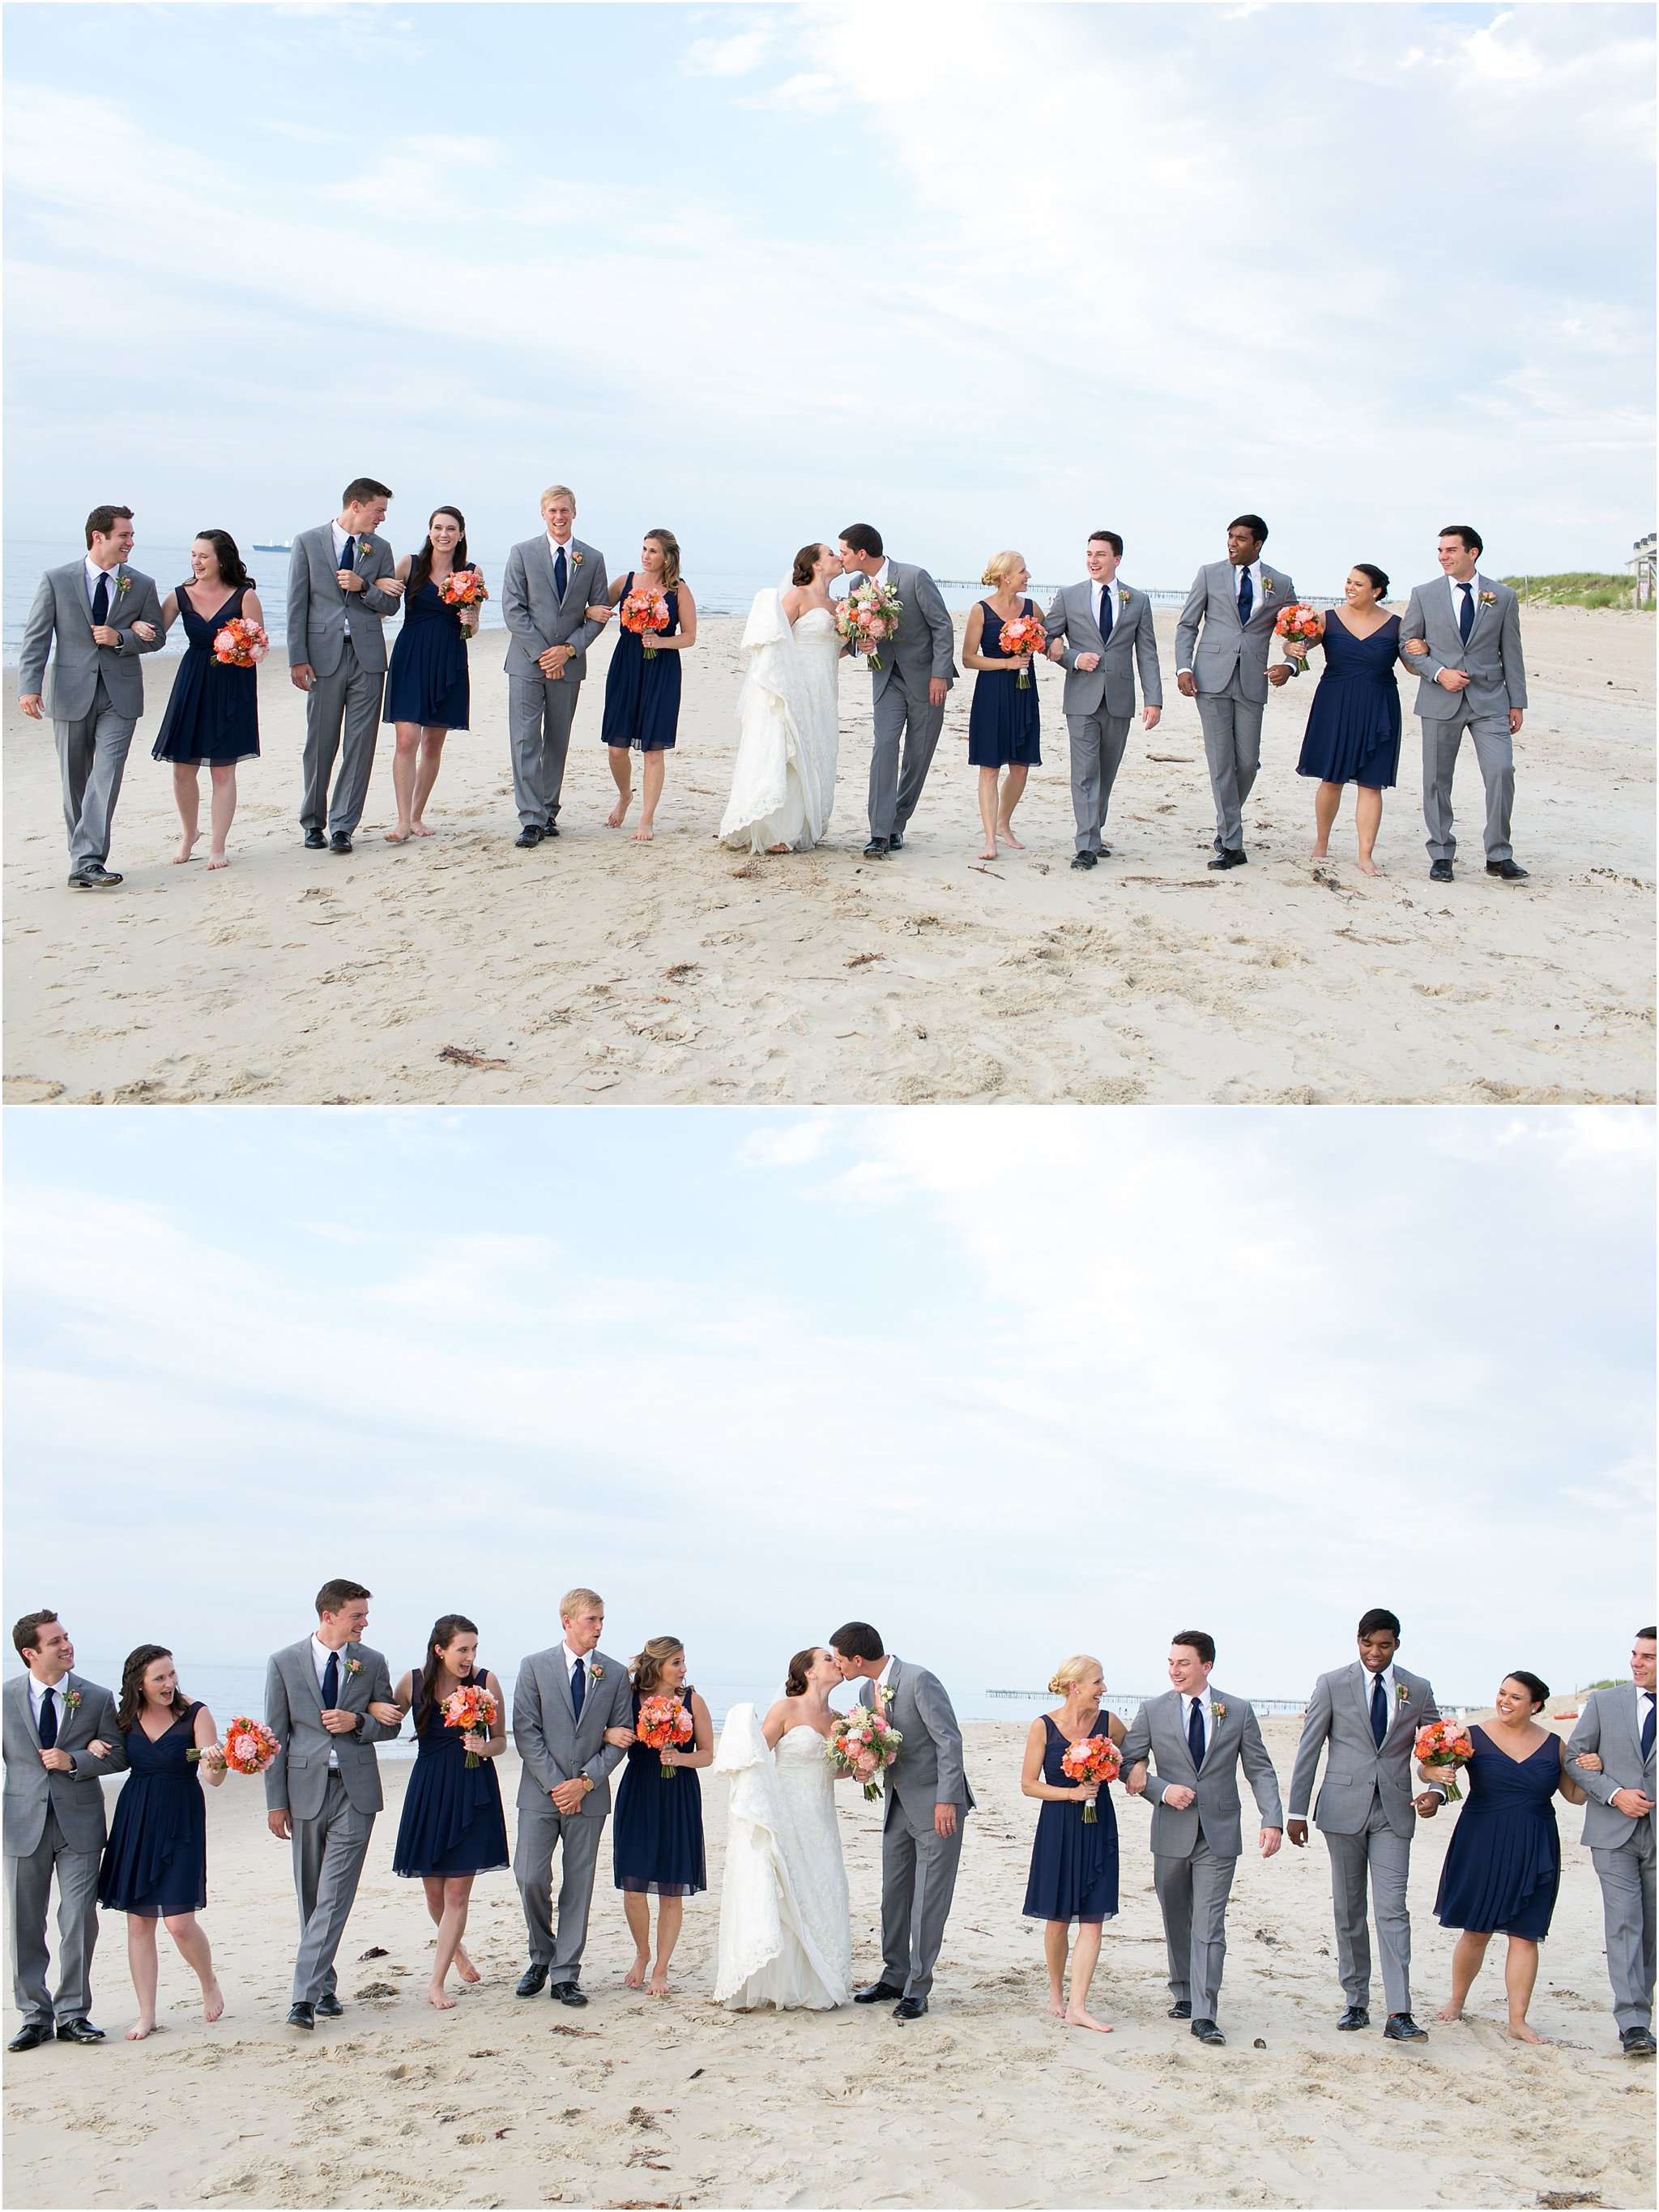 jessica_ryan_photography_wedding_photography_virginiabeach_virginia_candid_authentic_wedding_portraits_marina_shores_yacht_club_chesapeake_bay_1858